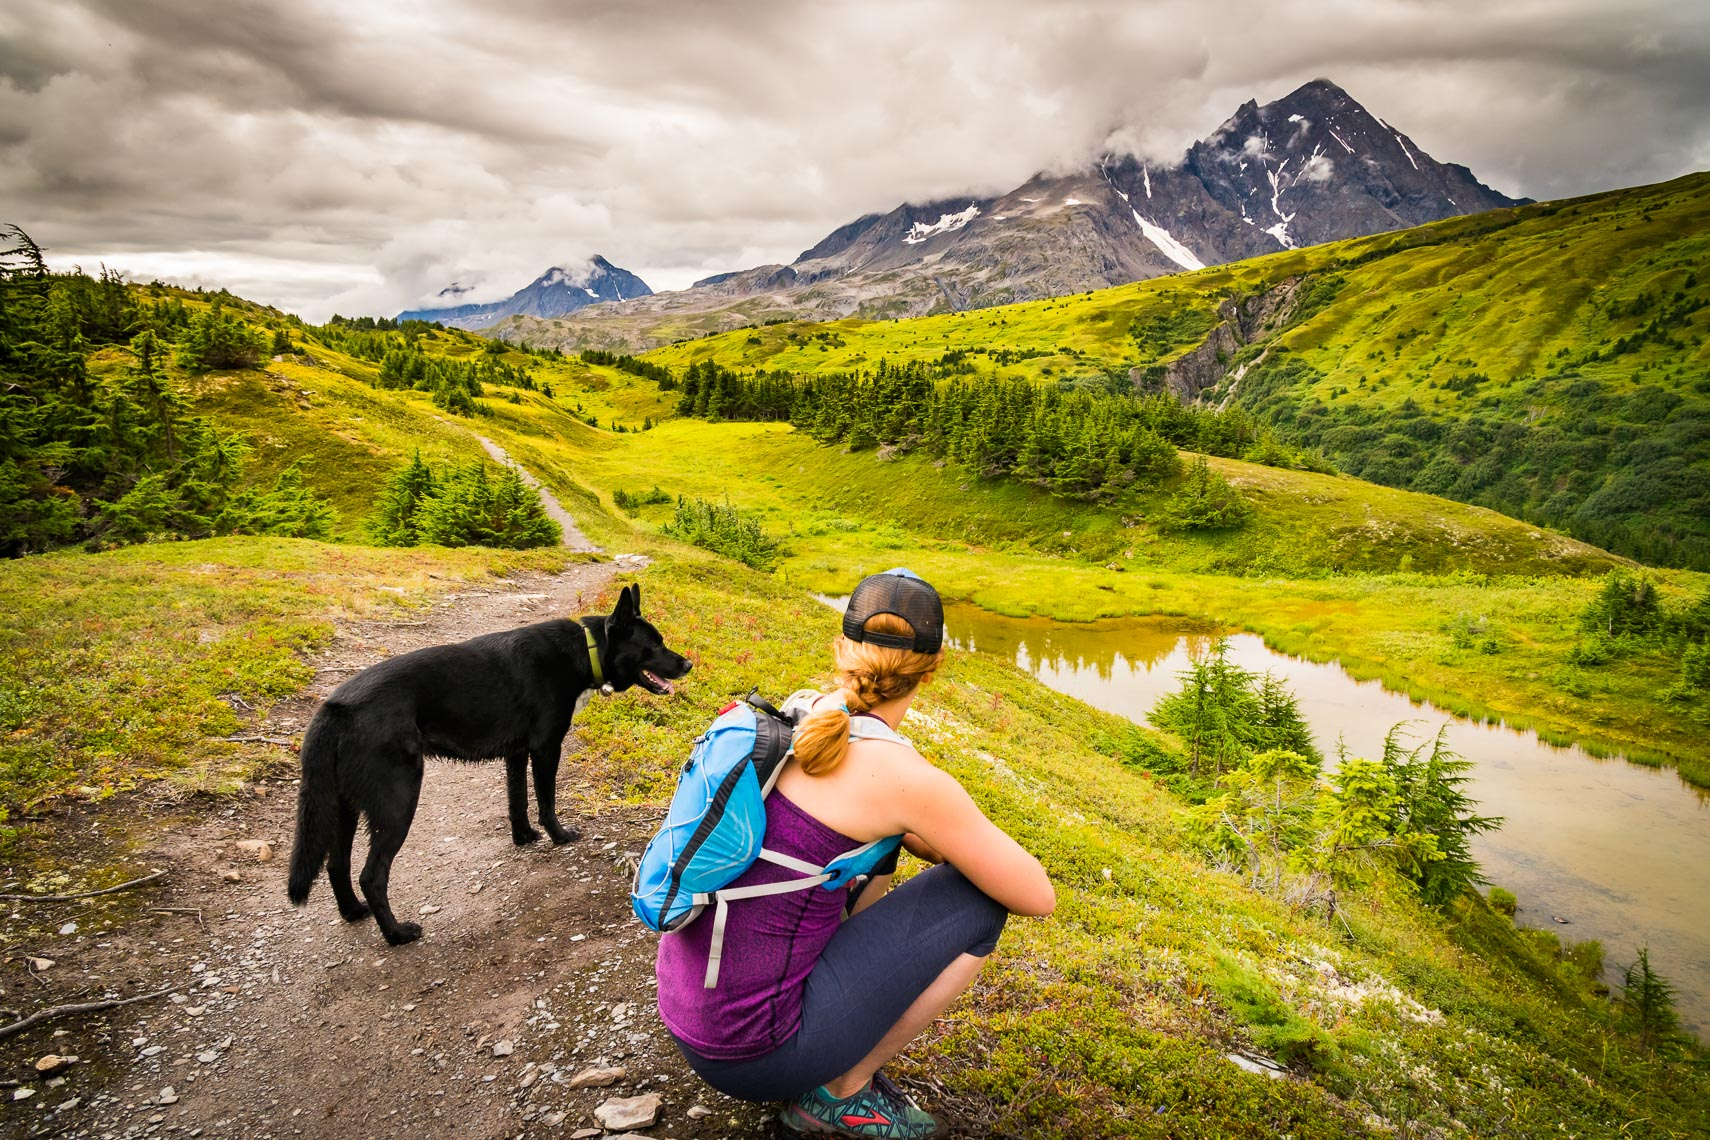 Alaska Hiking Trail with Dog | Michael DeYoung Photography